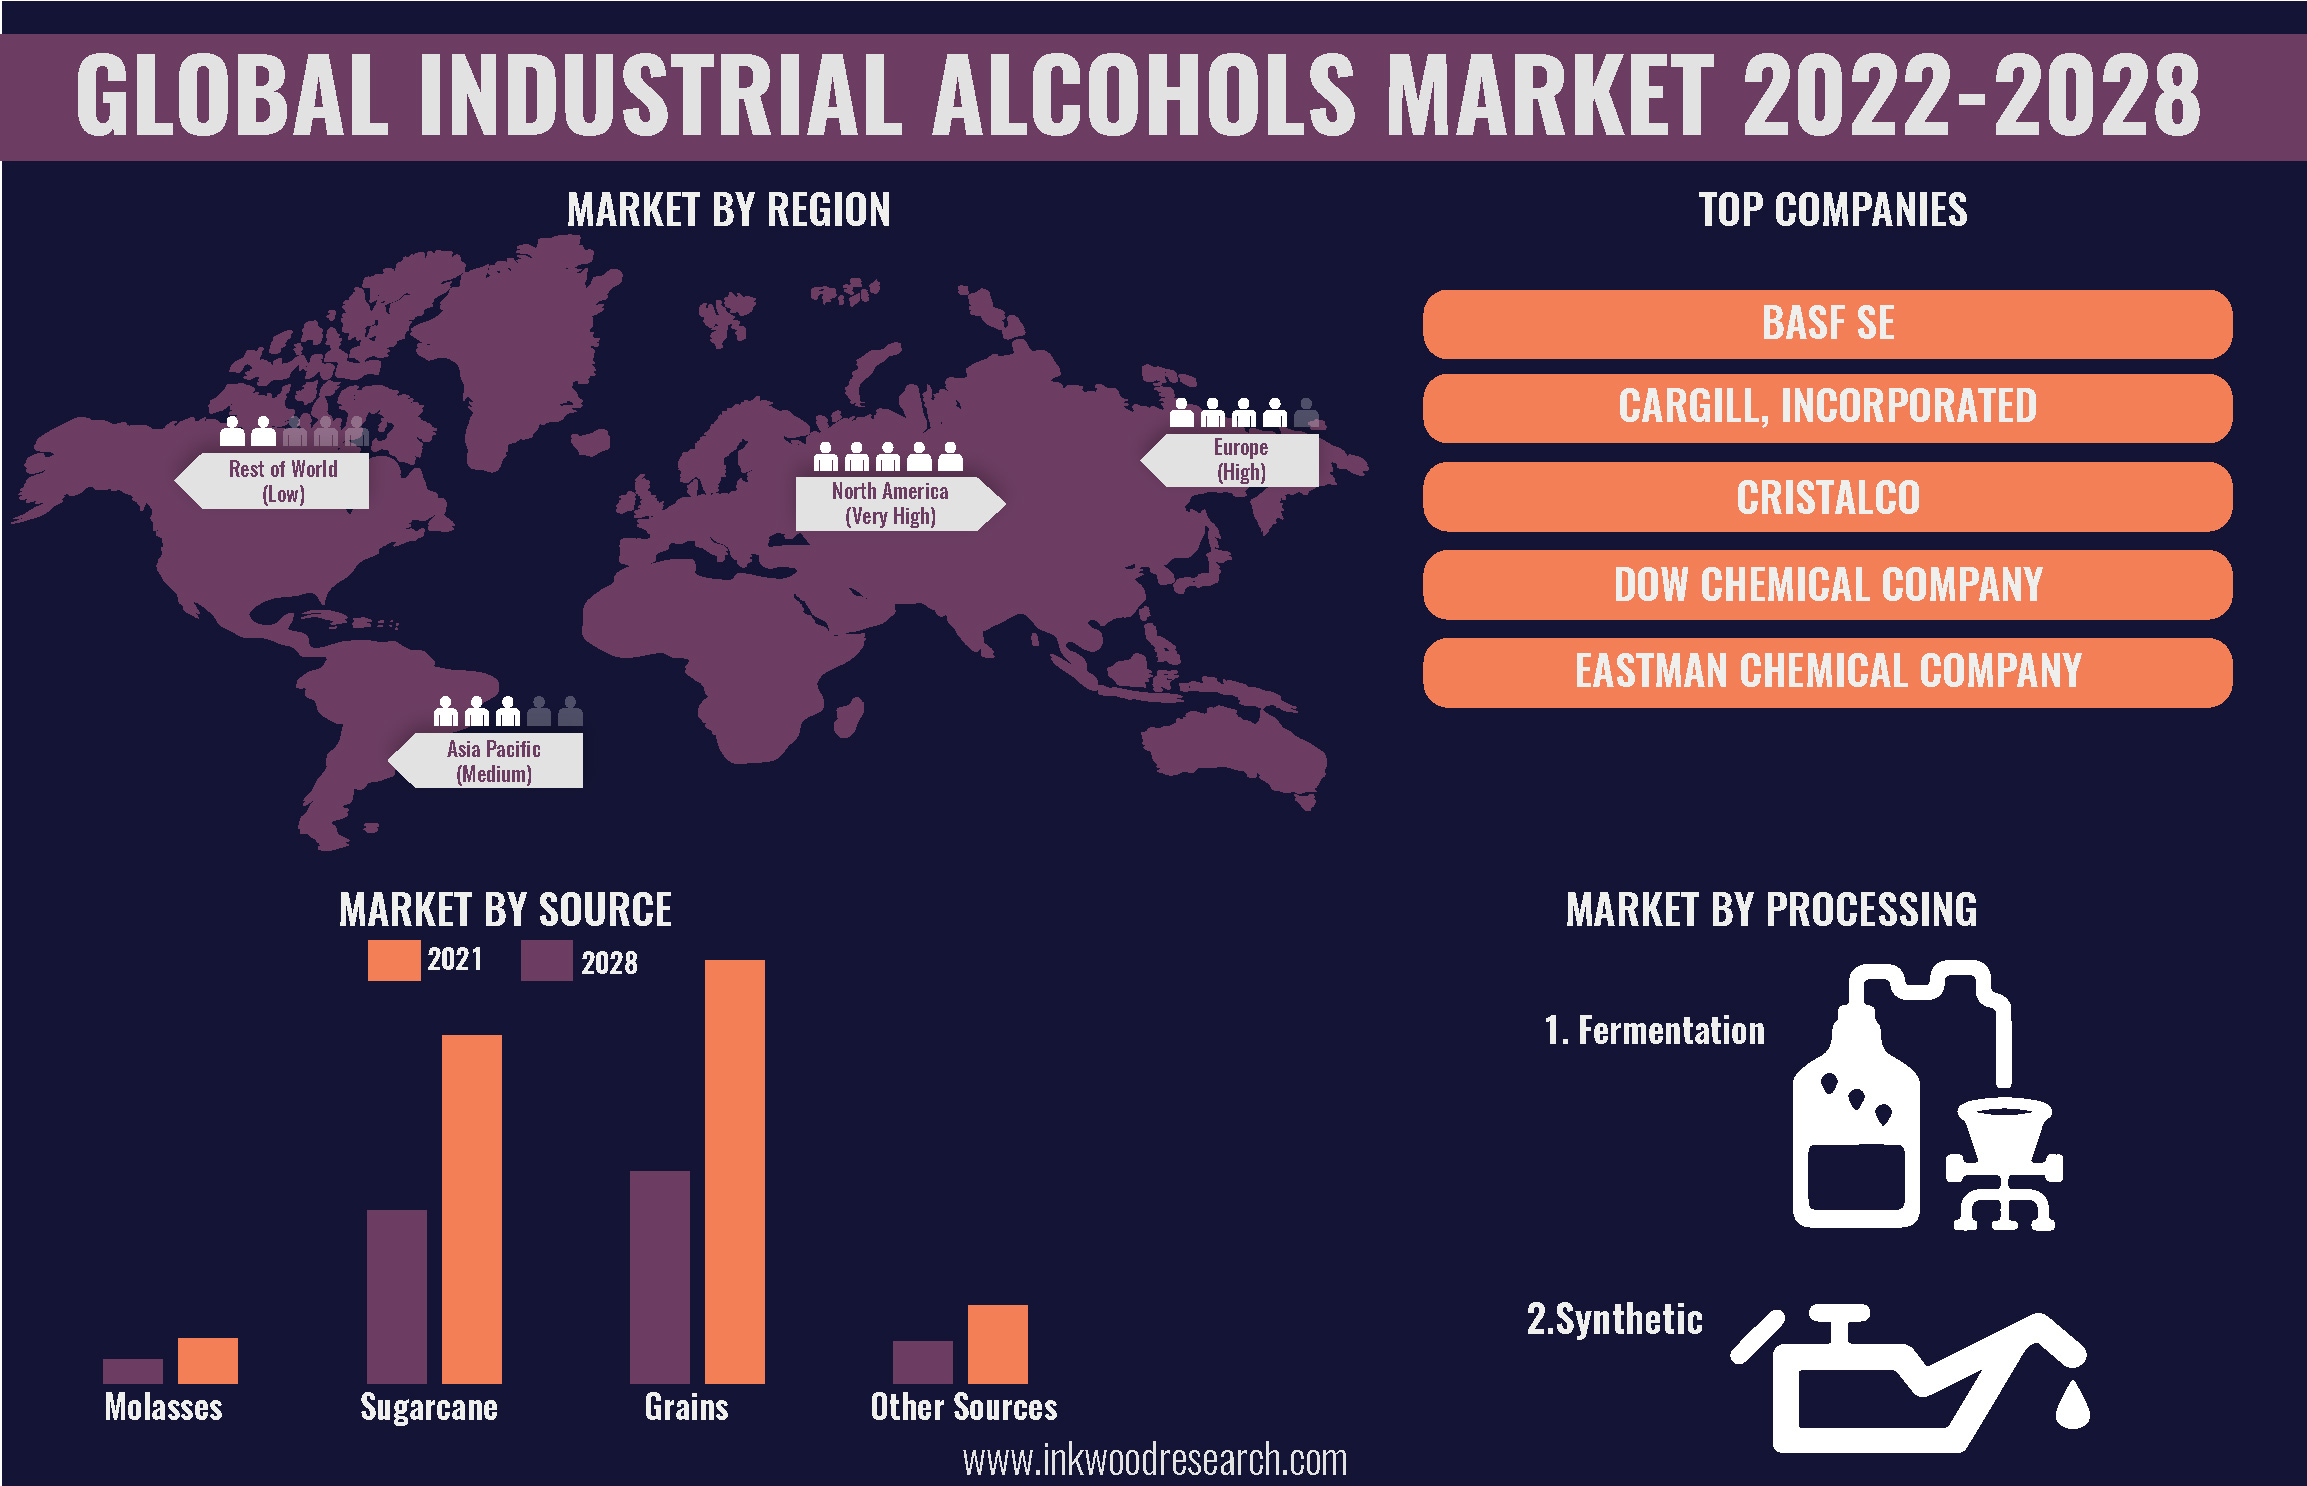 Rise in End-User Applications to push the Global Industrial Alcohols Market